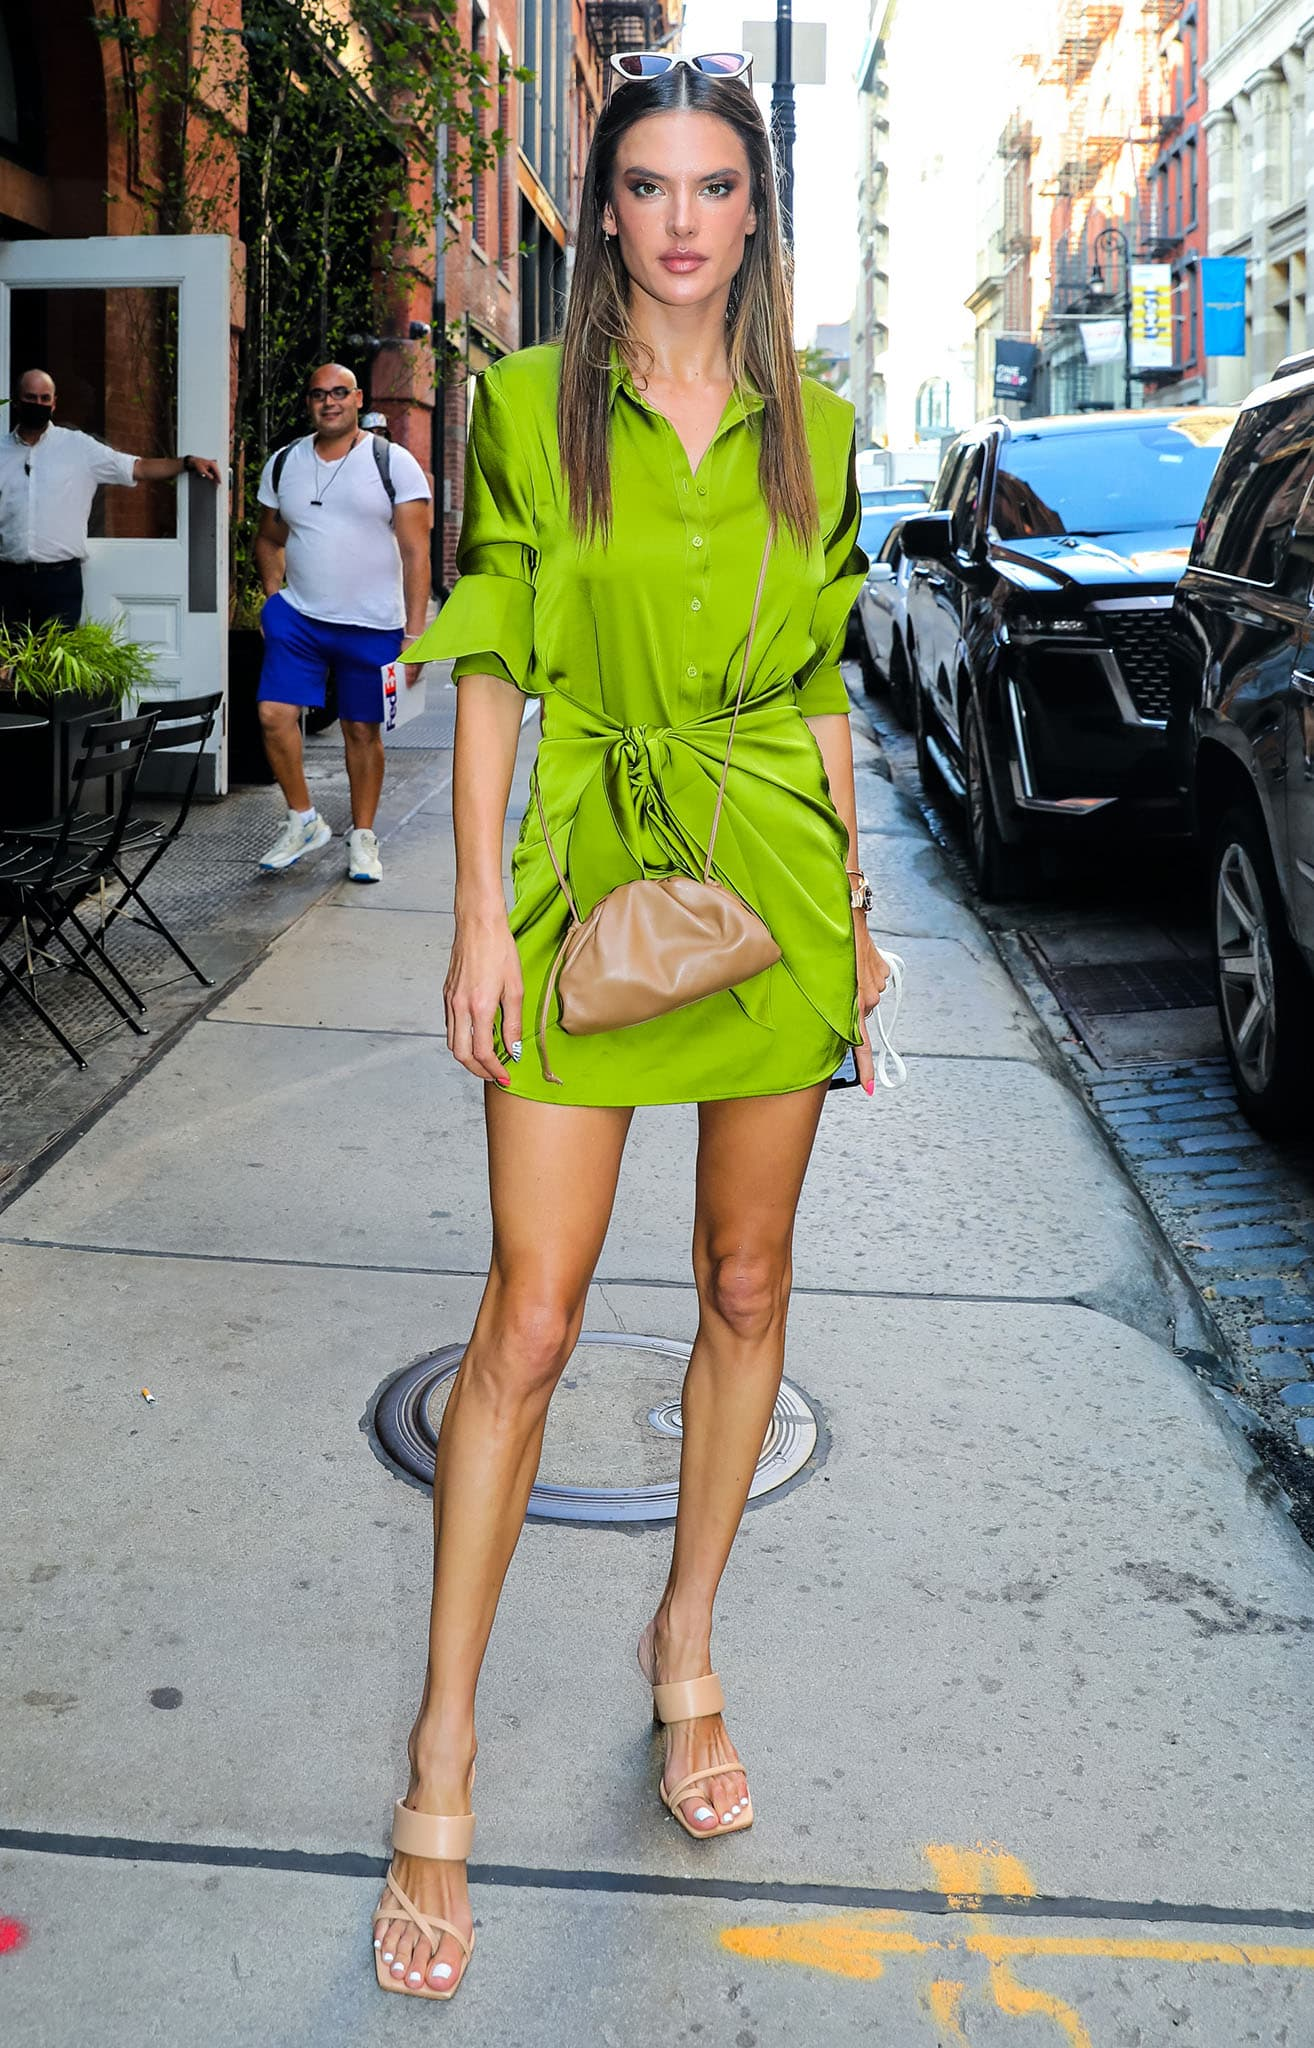 Alessandra Ambrosio showcases her long legs in a green silk shirt dress during New York Fashion Week on September 8, 2021